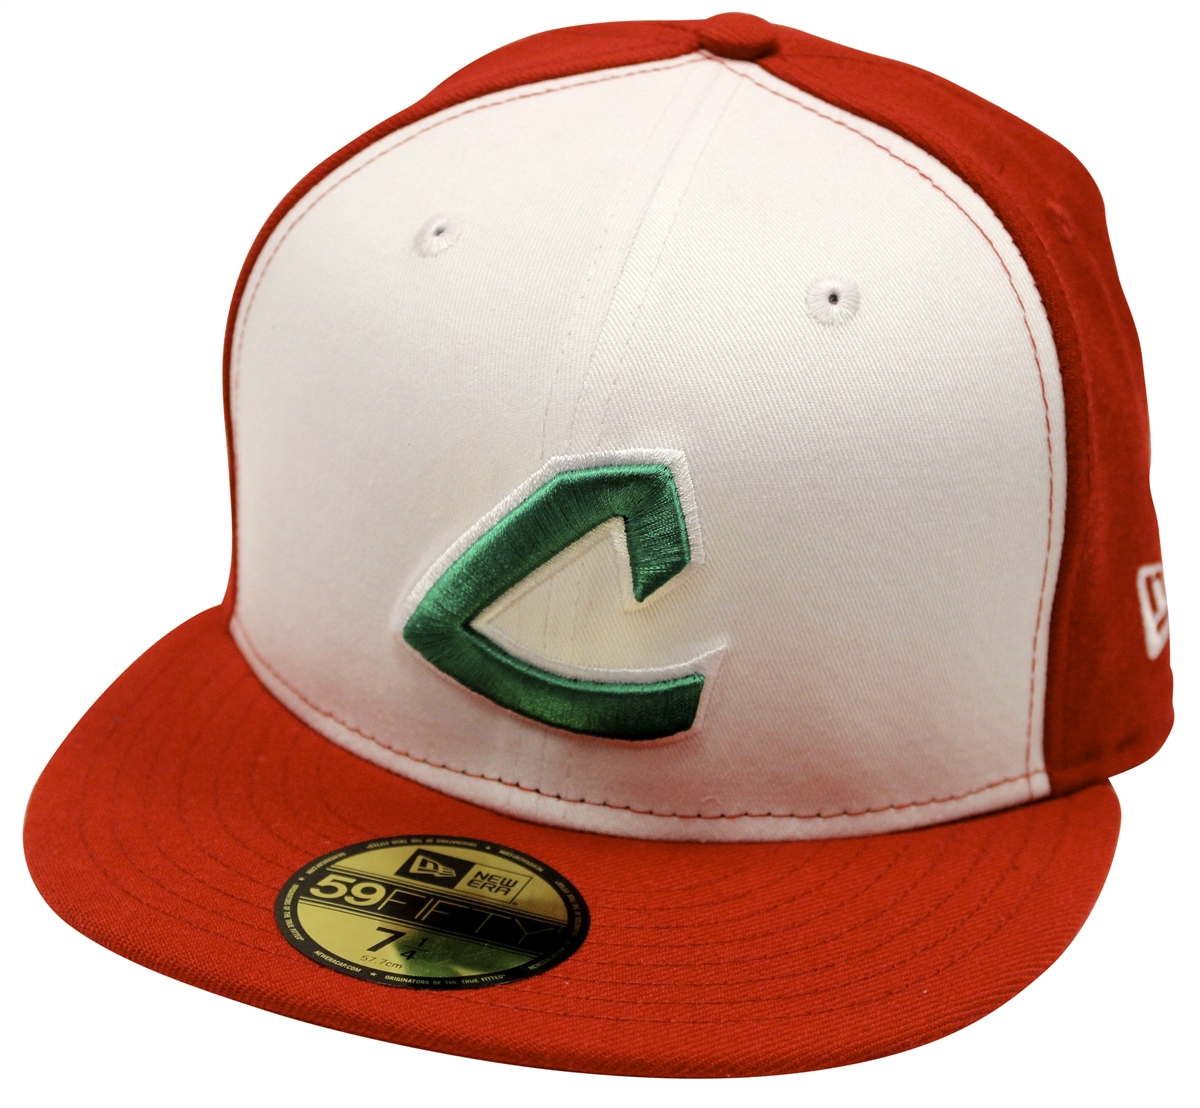 New Era 59Fifty Cleveland Indians White Red Fitted Cap T4H ... fab05e6c357